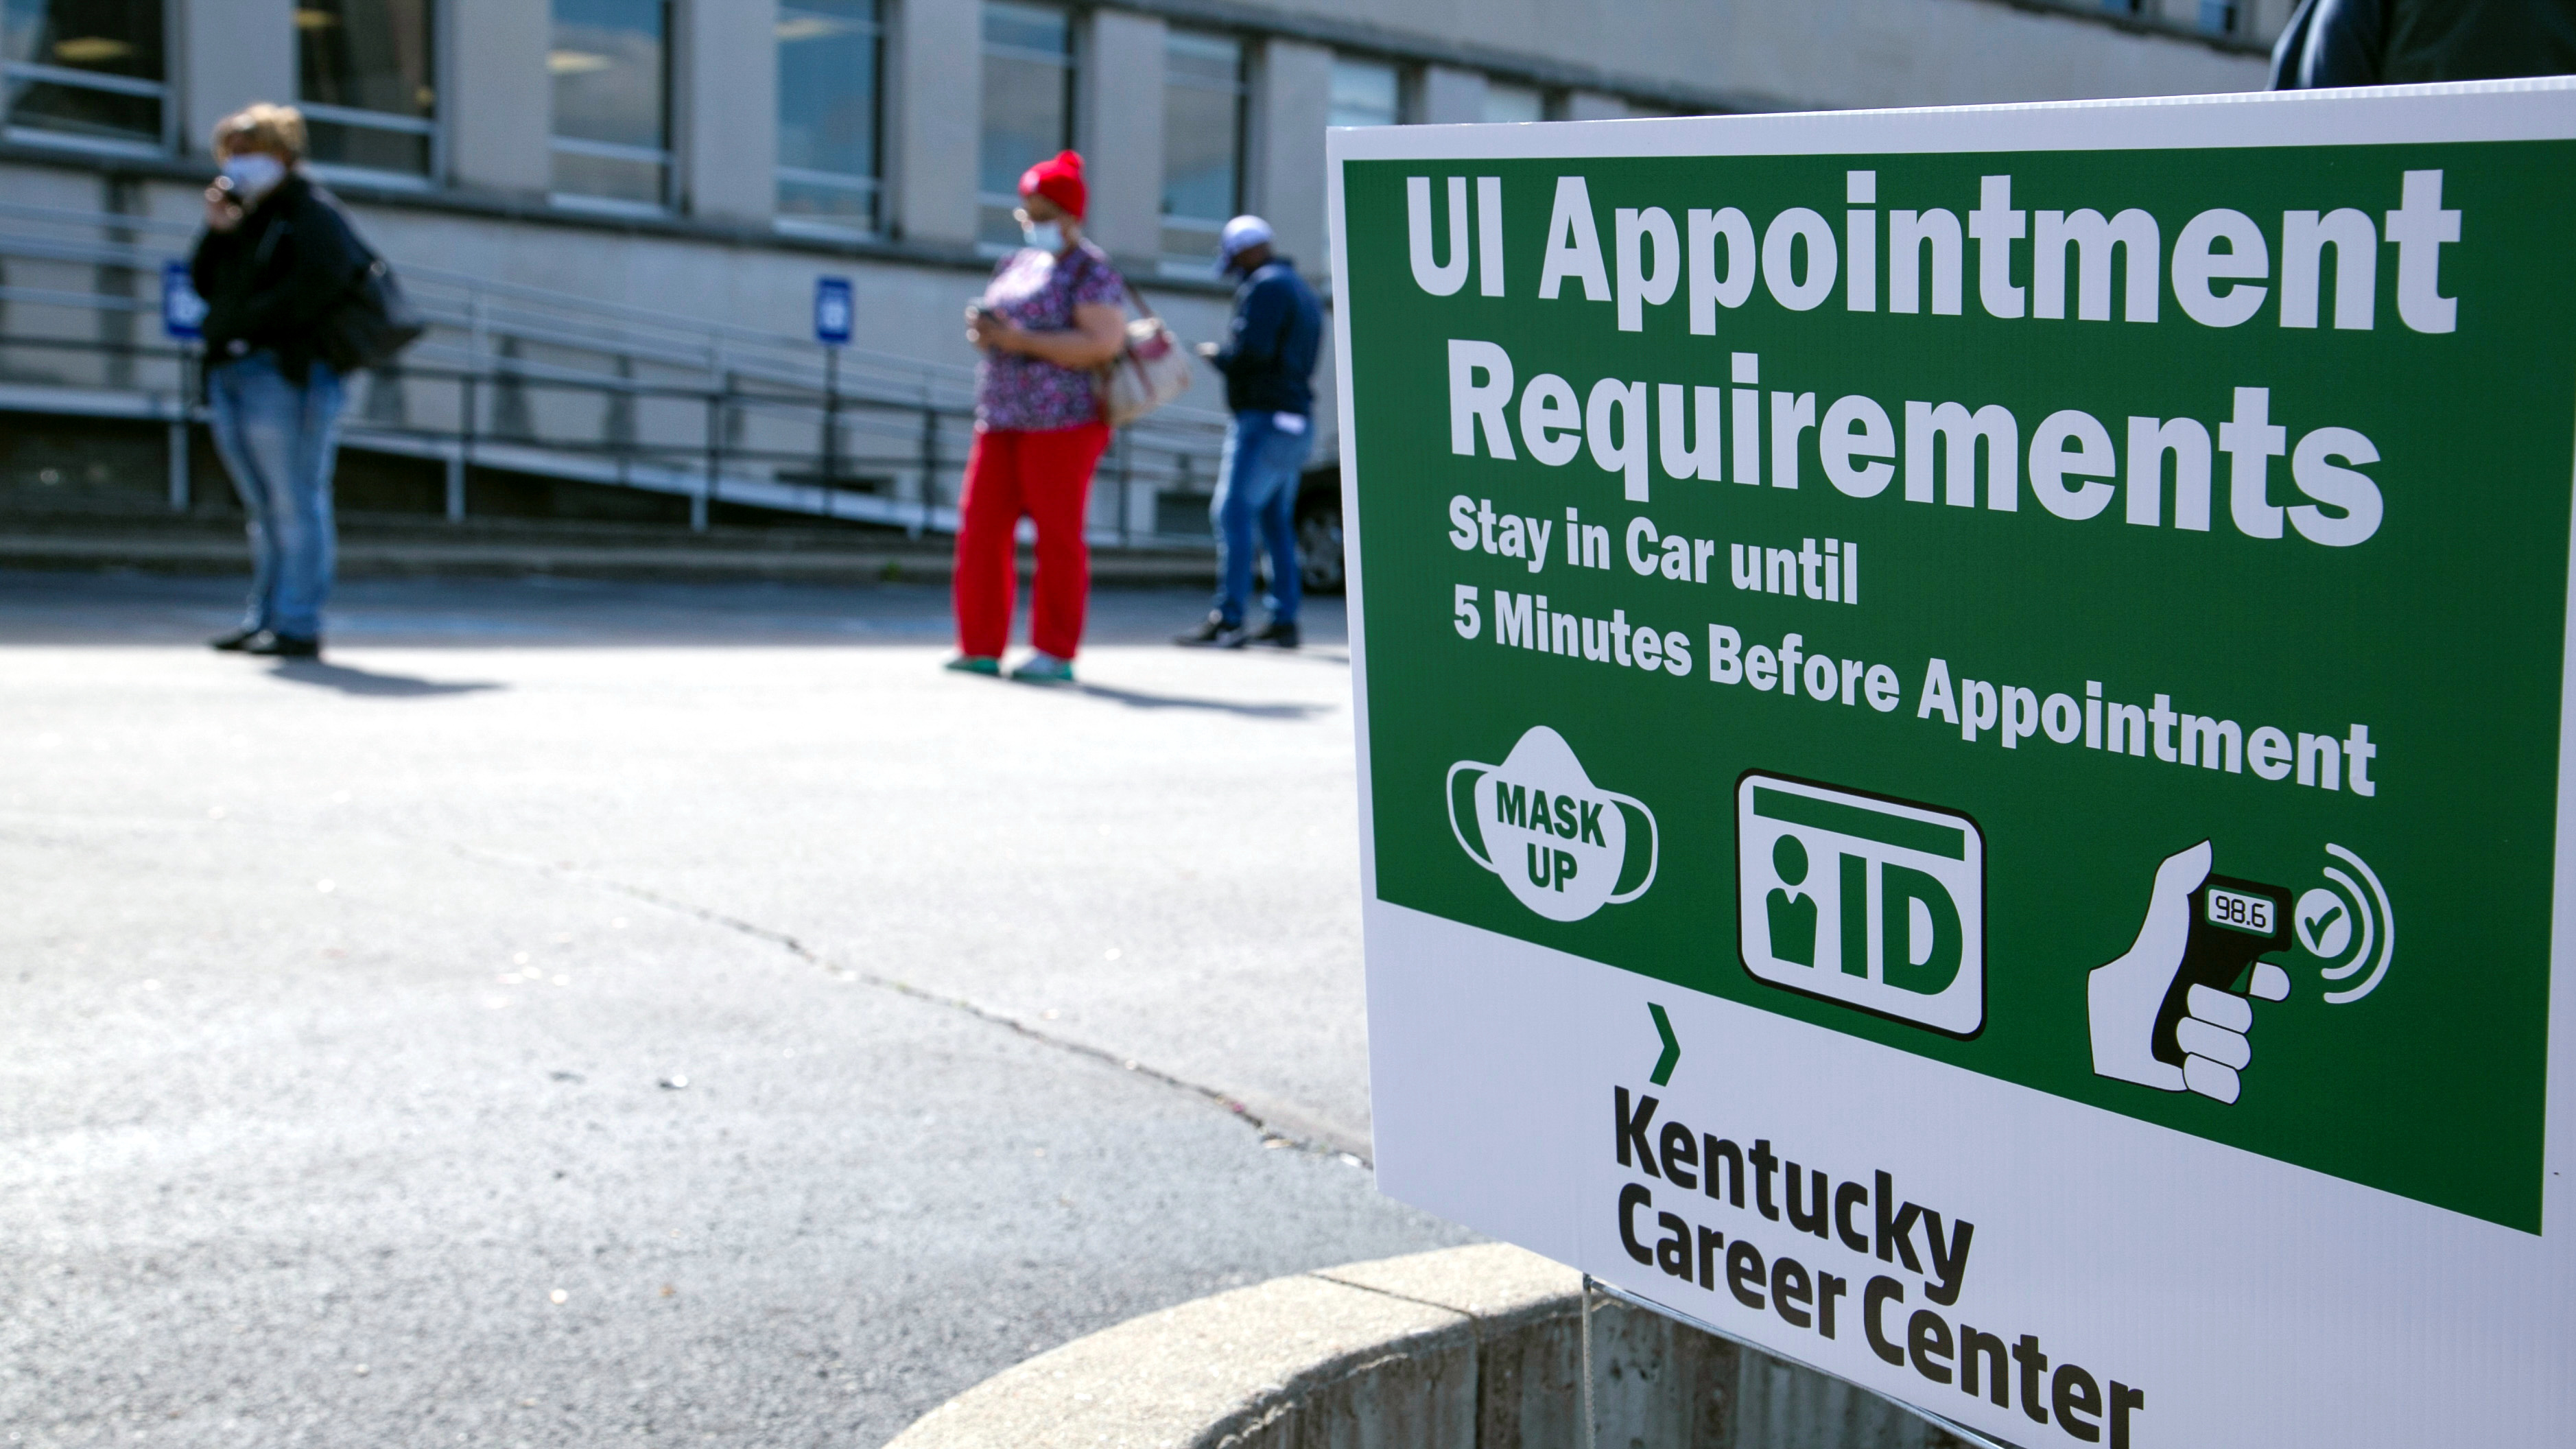 People wait in line as Kentucky Labor Cabinet reopens 13 Regional Career Centers for in-person unemployment insurance services, in Louisville, Kentucky, U.S.